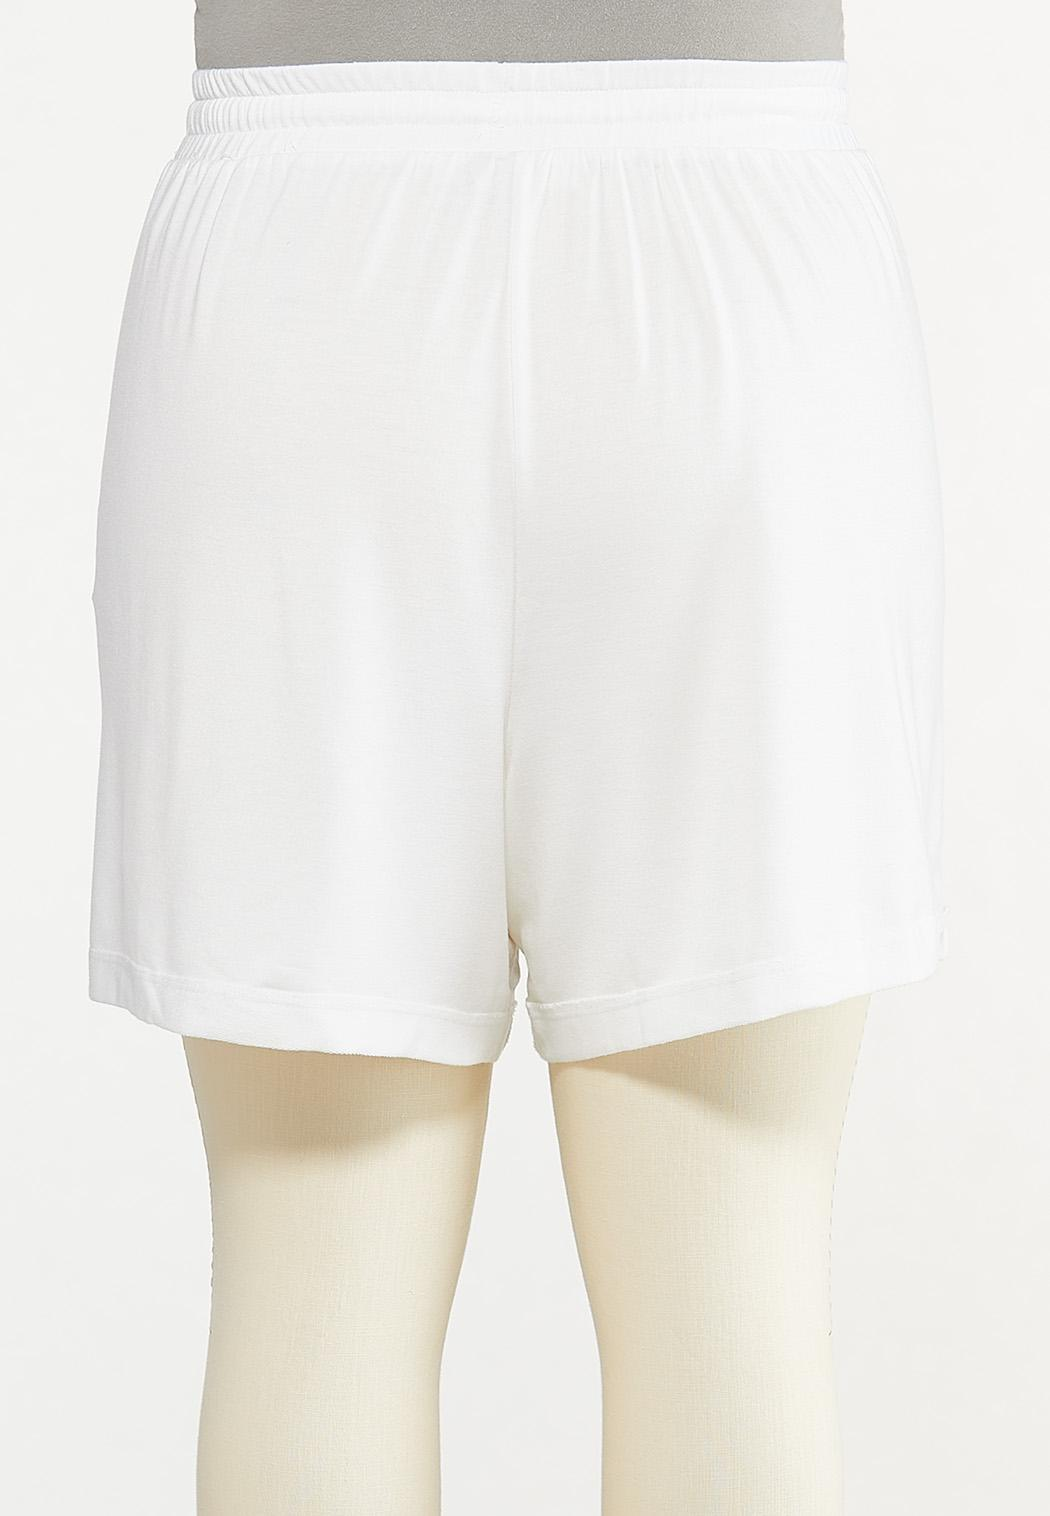 Plus Size French Terry Shorts (Item #44627121)